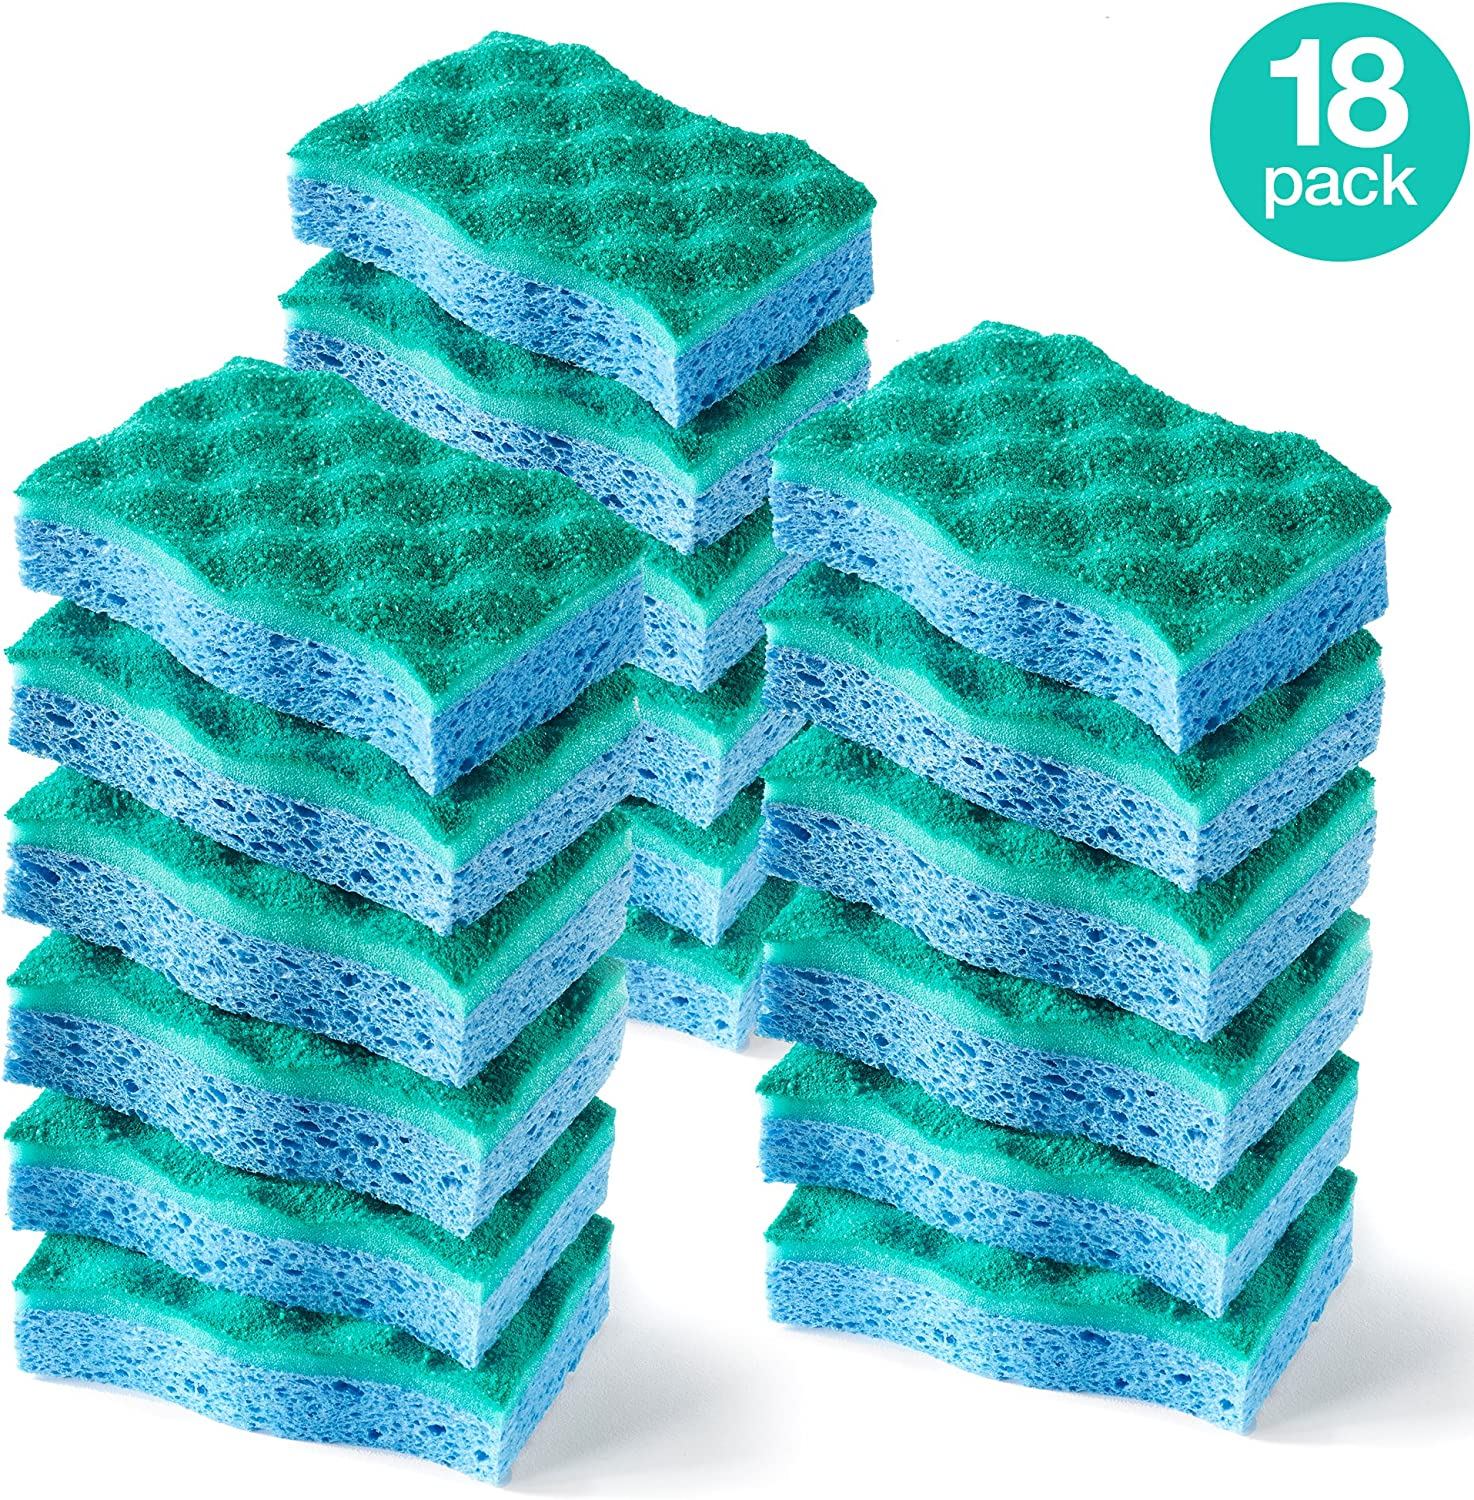 O-Cedar Multi-Use Scrunge Scrub Sponge (Pack - 18)